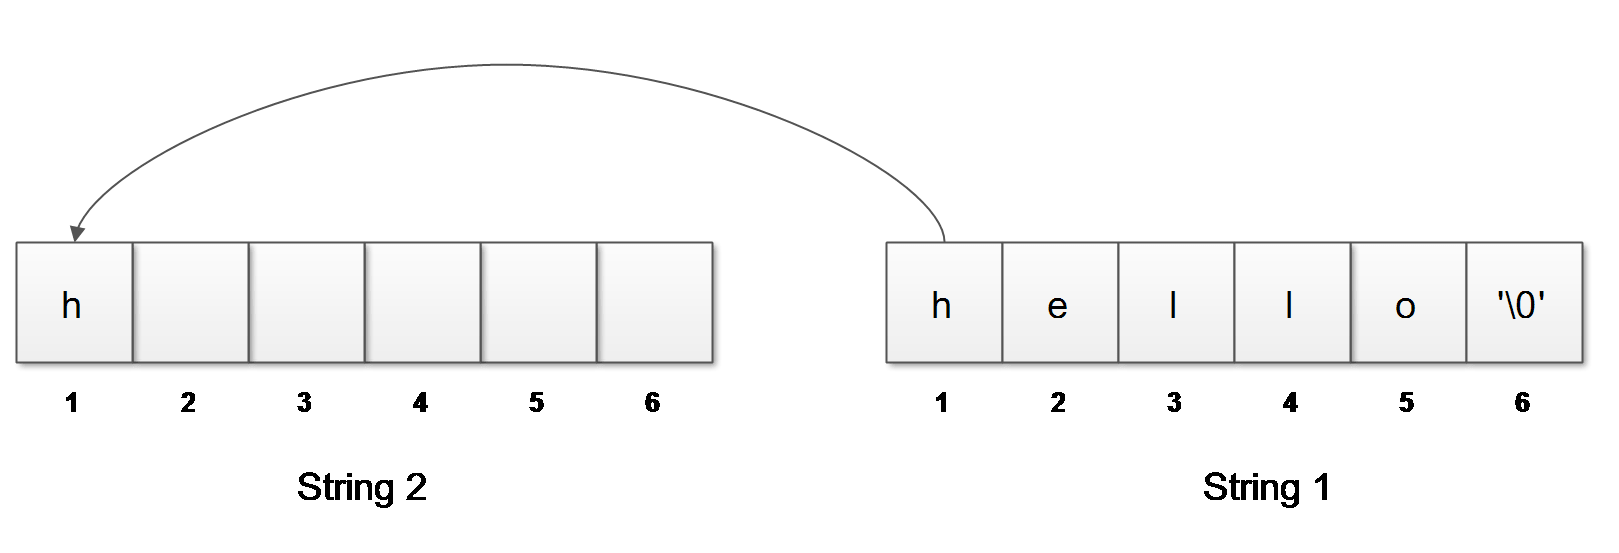 Figure 1: Reading one character at time from String 1 to String 2